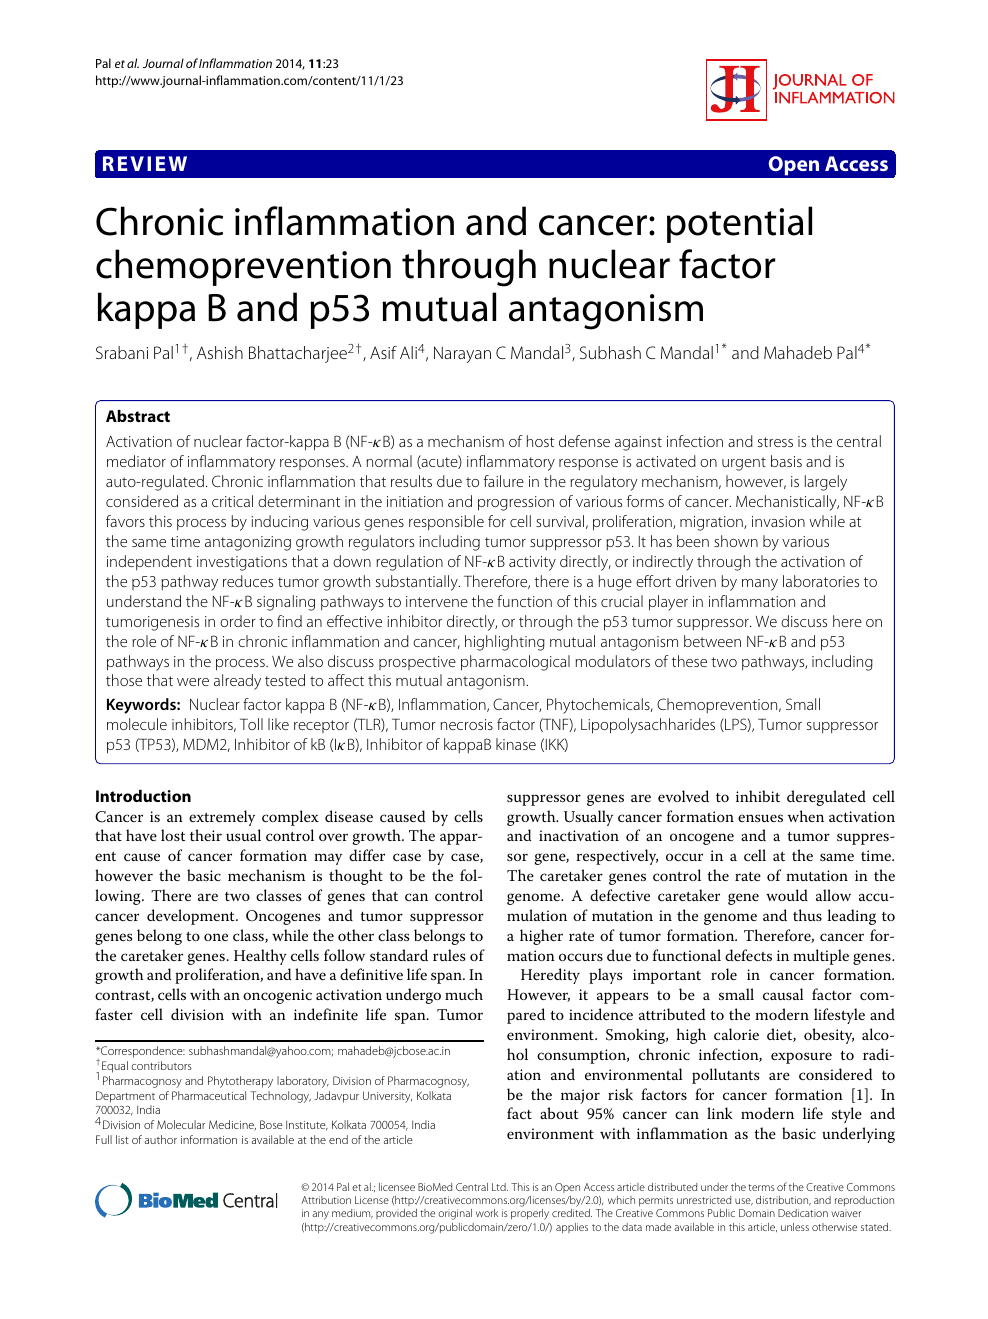 Chronic inflammation and cancer: potential chemoprevention